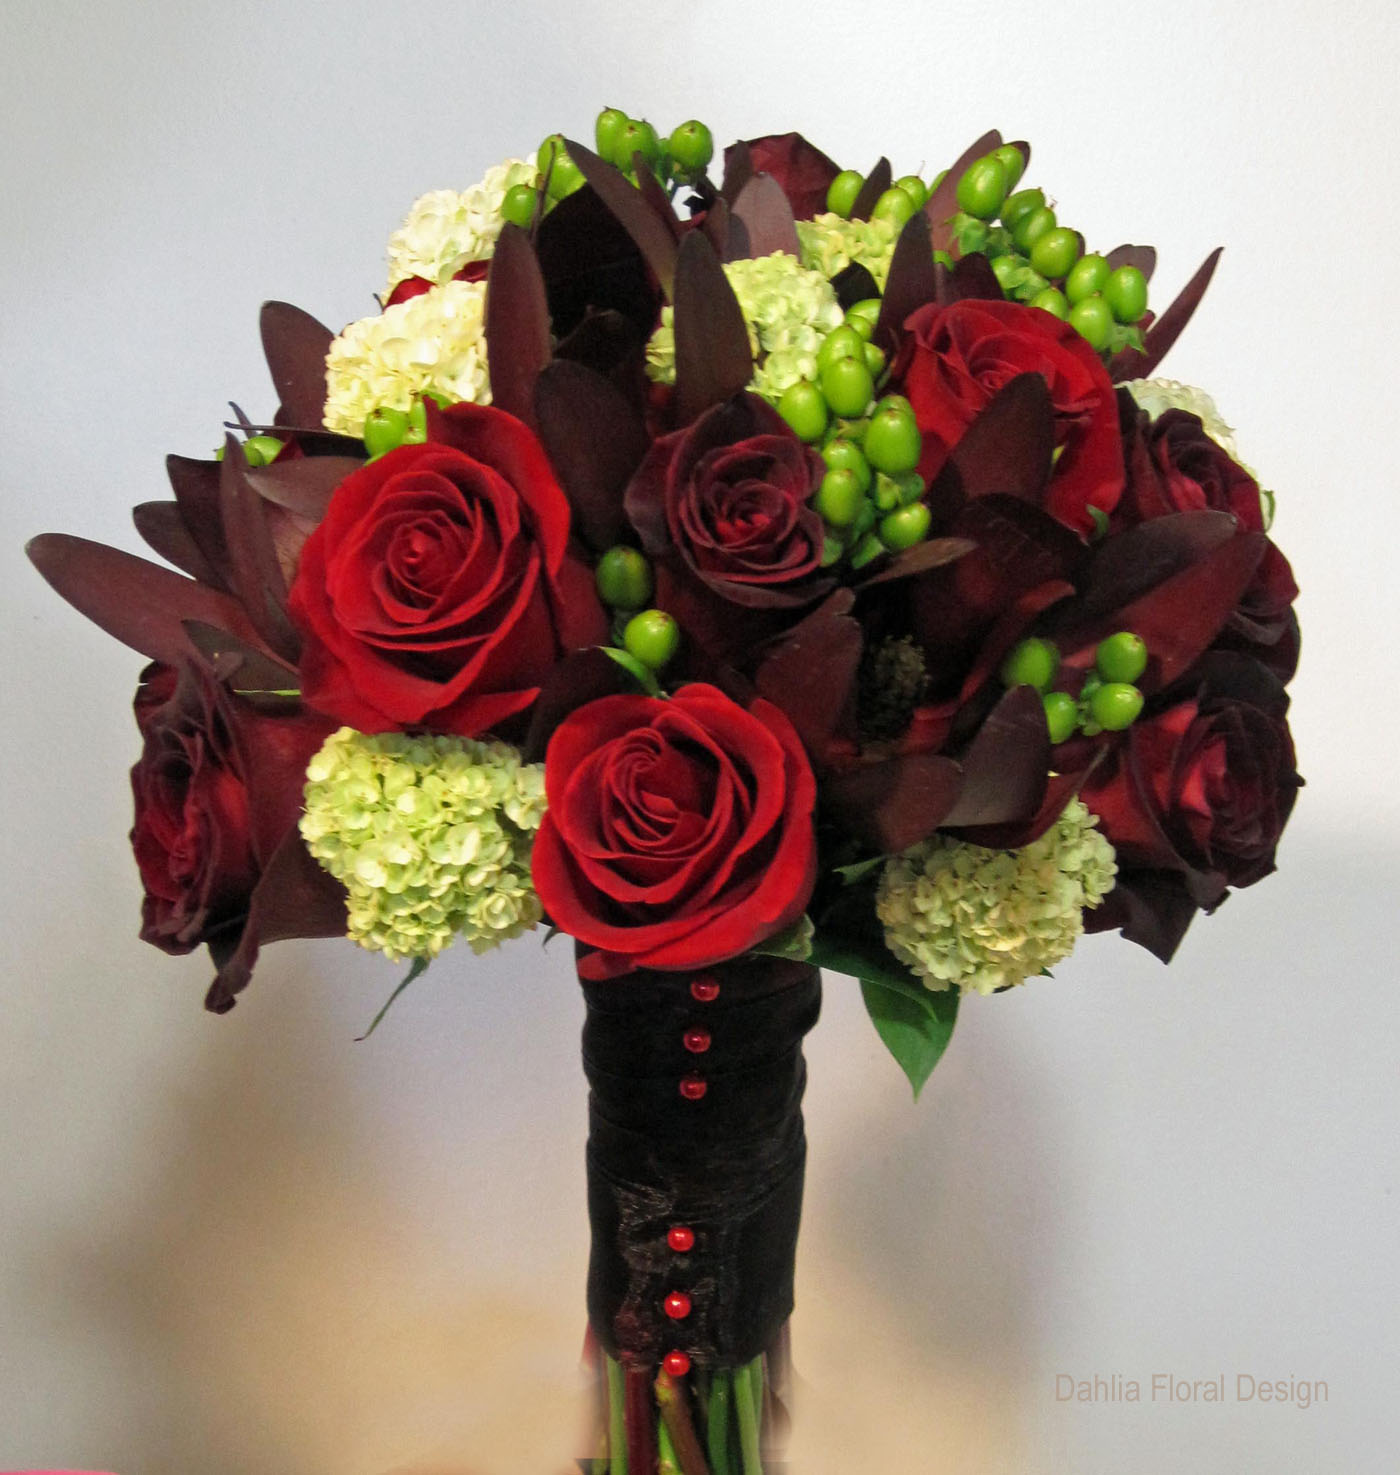 Fusion Mixed Colored Bouquets - Dahlia Floral Design